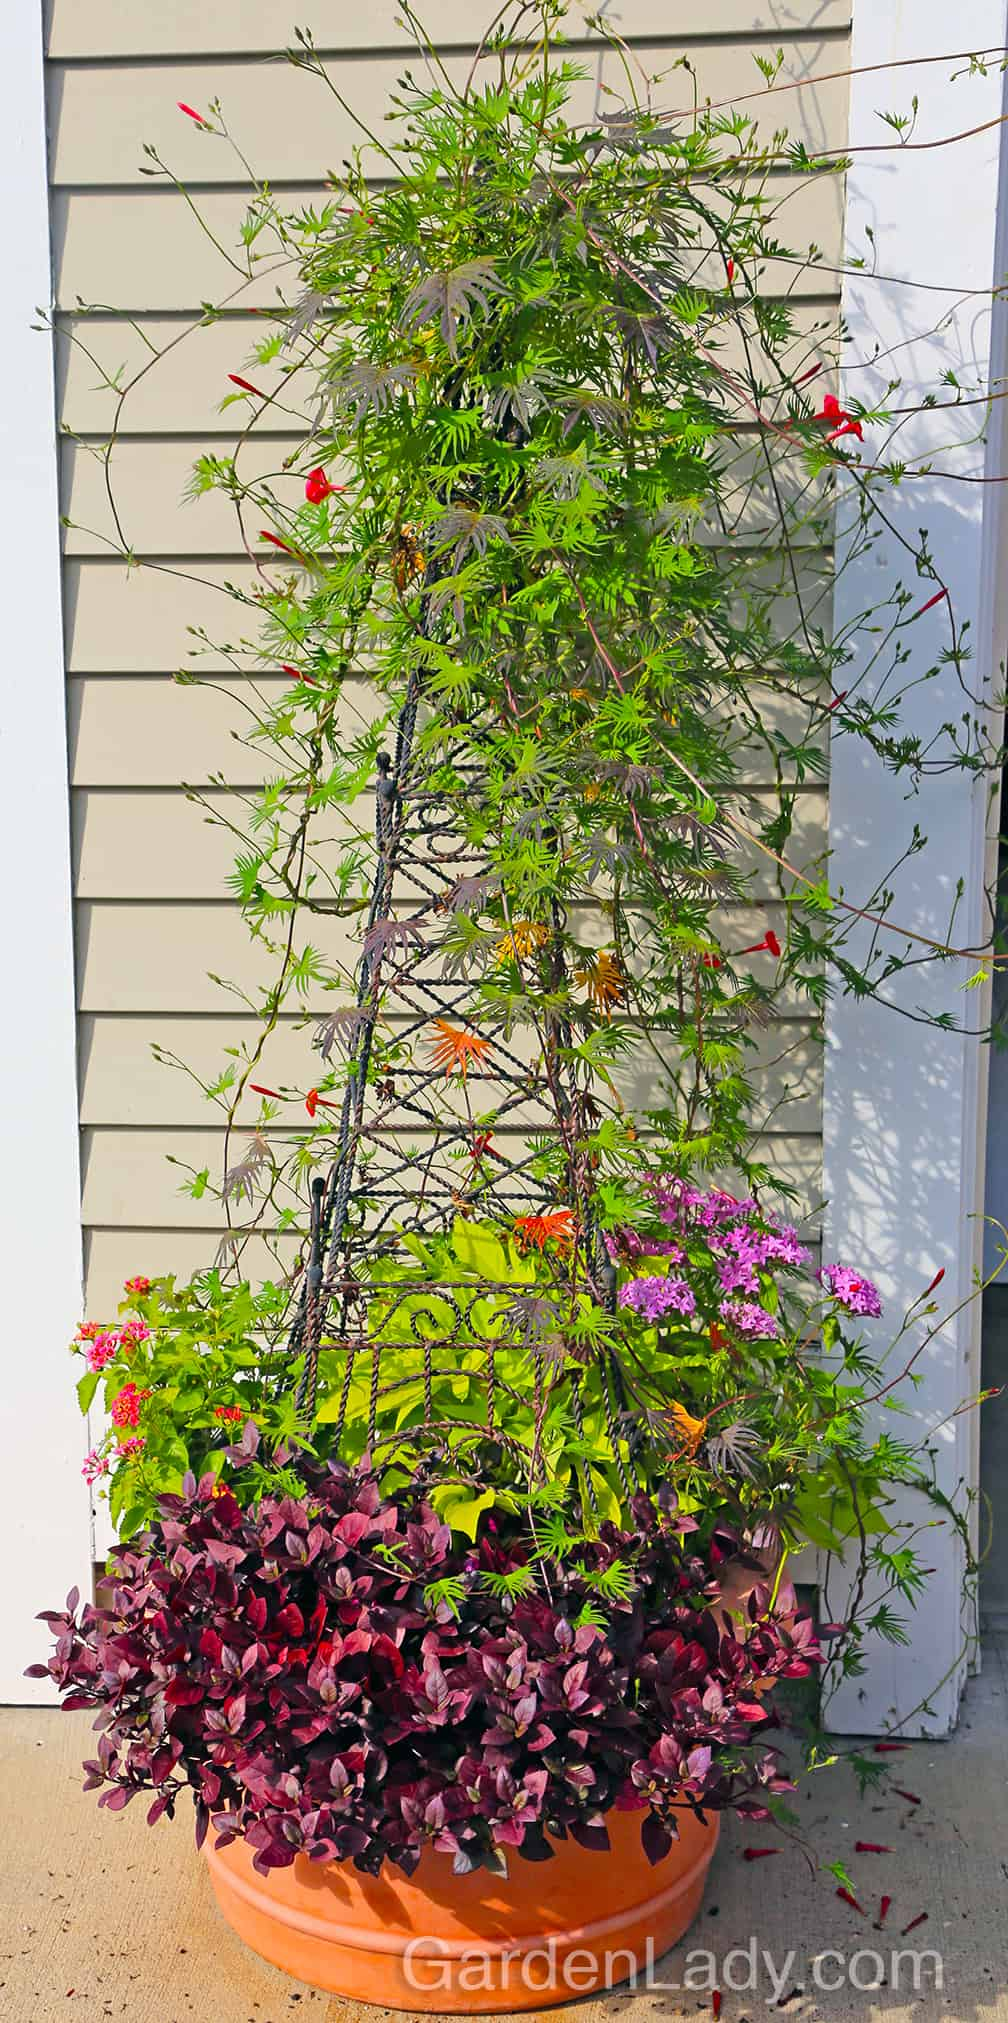 This photo shows that Ipomoea x multifida is a perfect plant for small structures. This wire tower was about four feet high and here is how the planter looked in August.